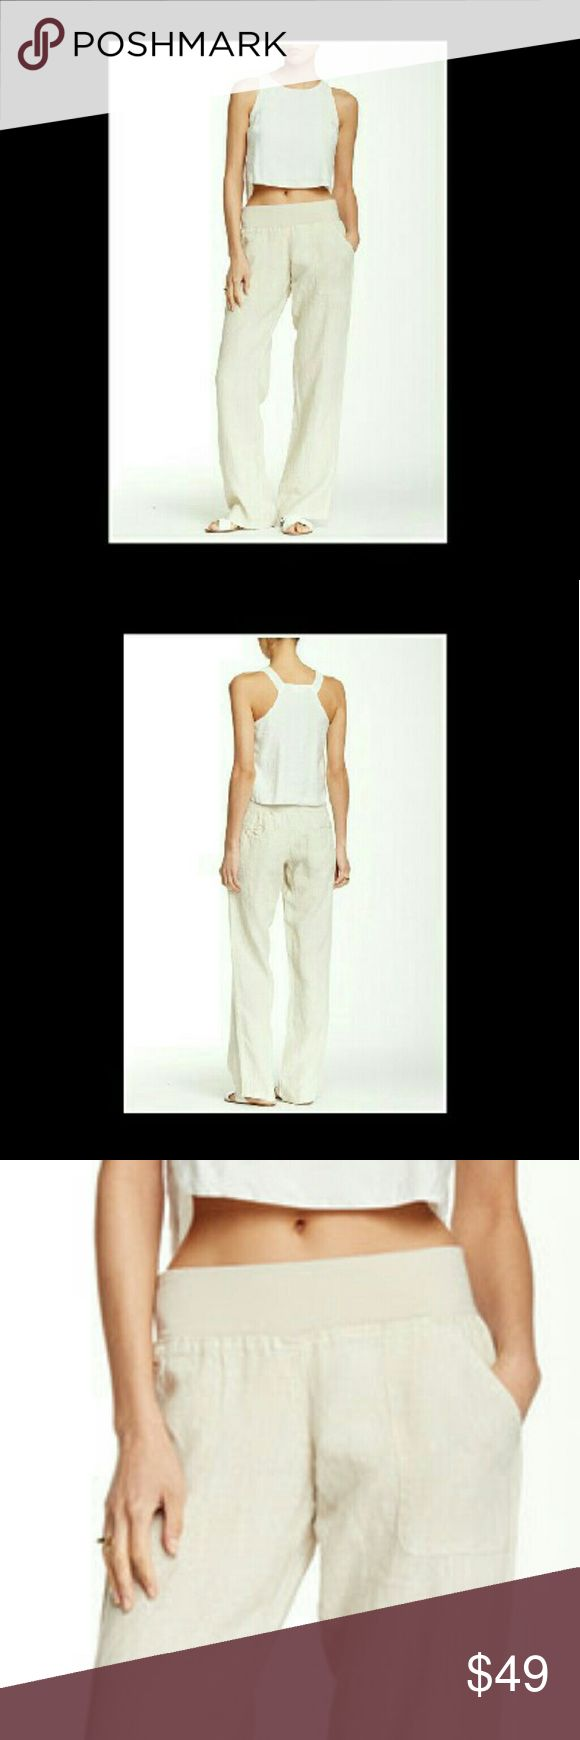 """Lazy Summer Days' Coming Soon Lazy Summer Days Linen  Lounge Pants. Whether you are headed  for the Bahamas, The Keys, or the hammock in your back yard, go in  style and comfort in these casual linen lounge pants. Details: Elastic waist, front slant pockets, back welt pockets, approximately 9"""" rise & 31"""" inseam  100 % LINEN  Flax is the color Pants"""